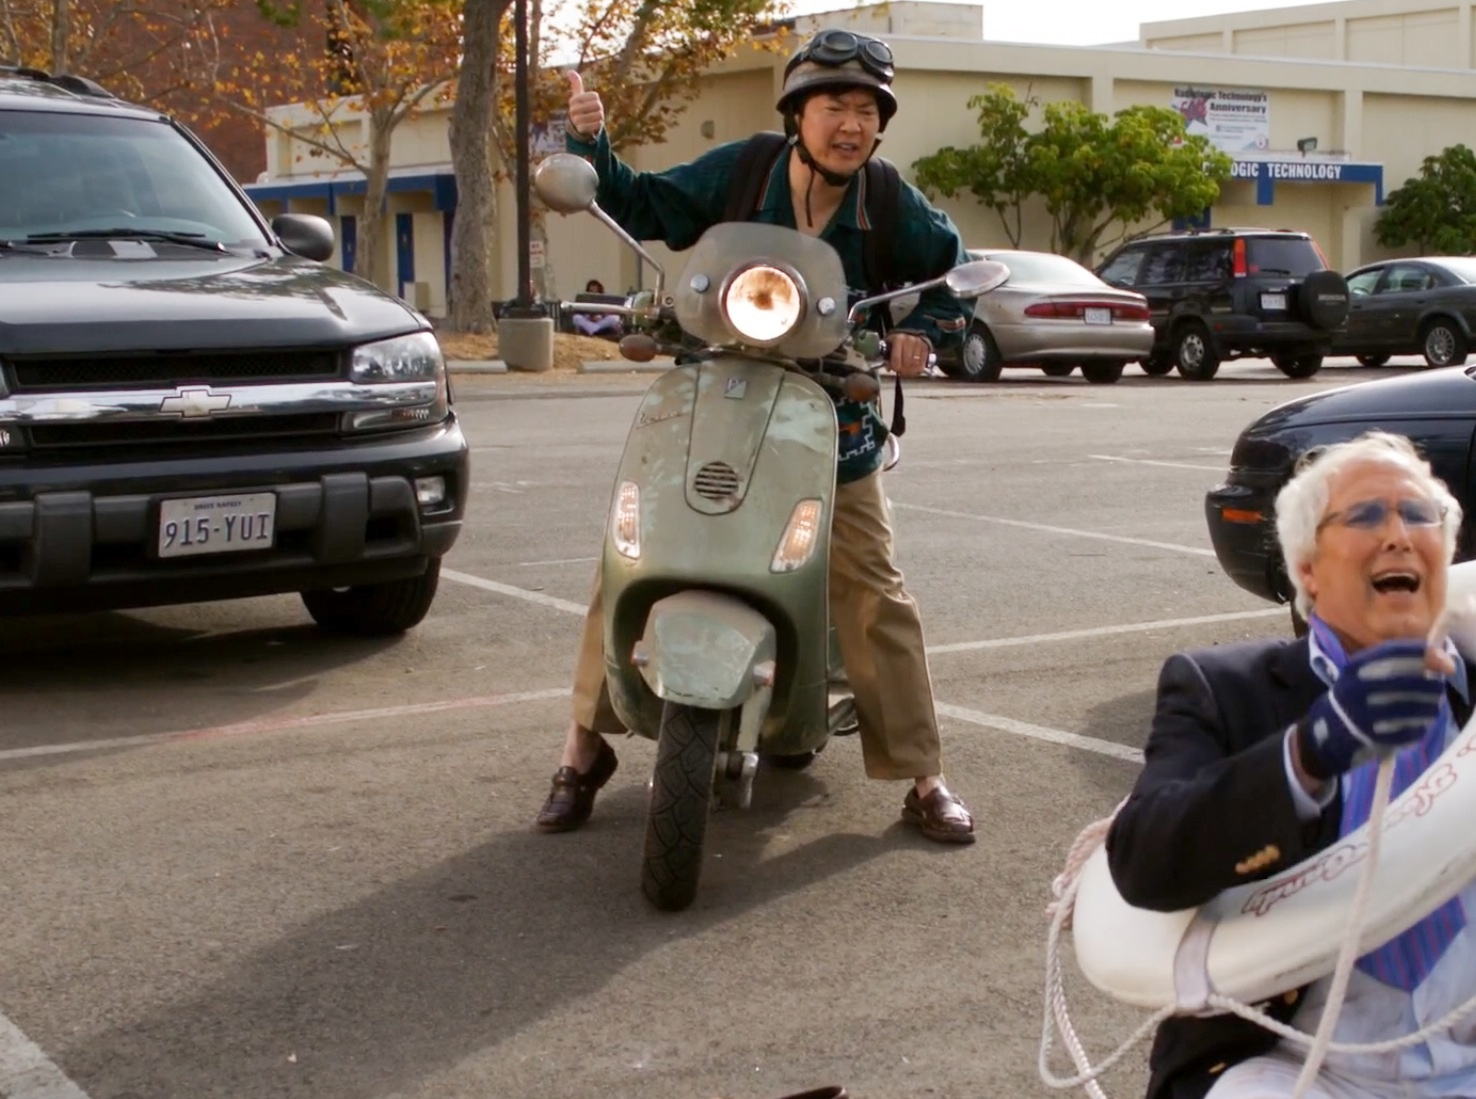 Chang's moped | Community Wiki | FANDOM powered by Wikia